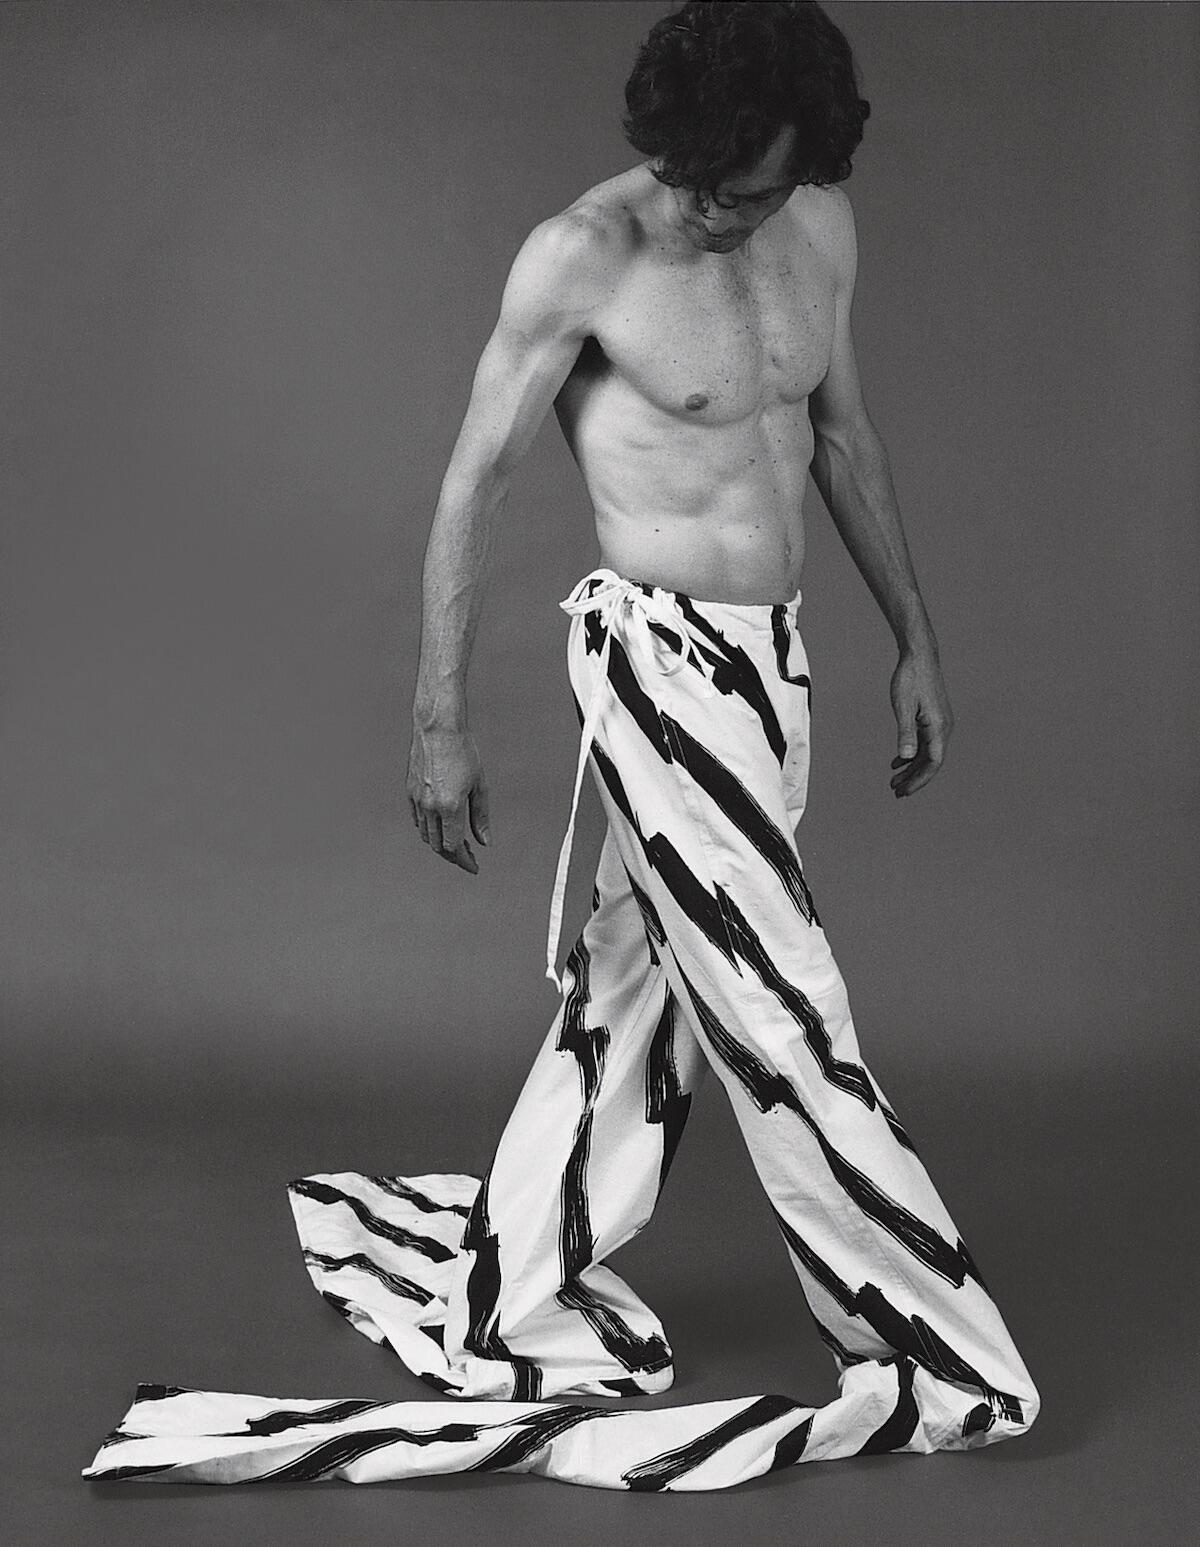 Topless man in fabric trousers, monochrome photograph